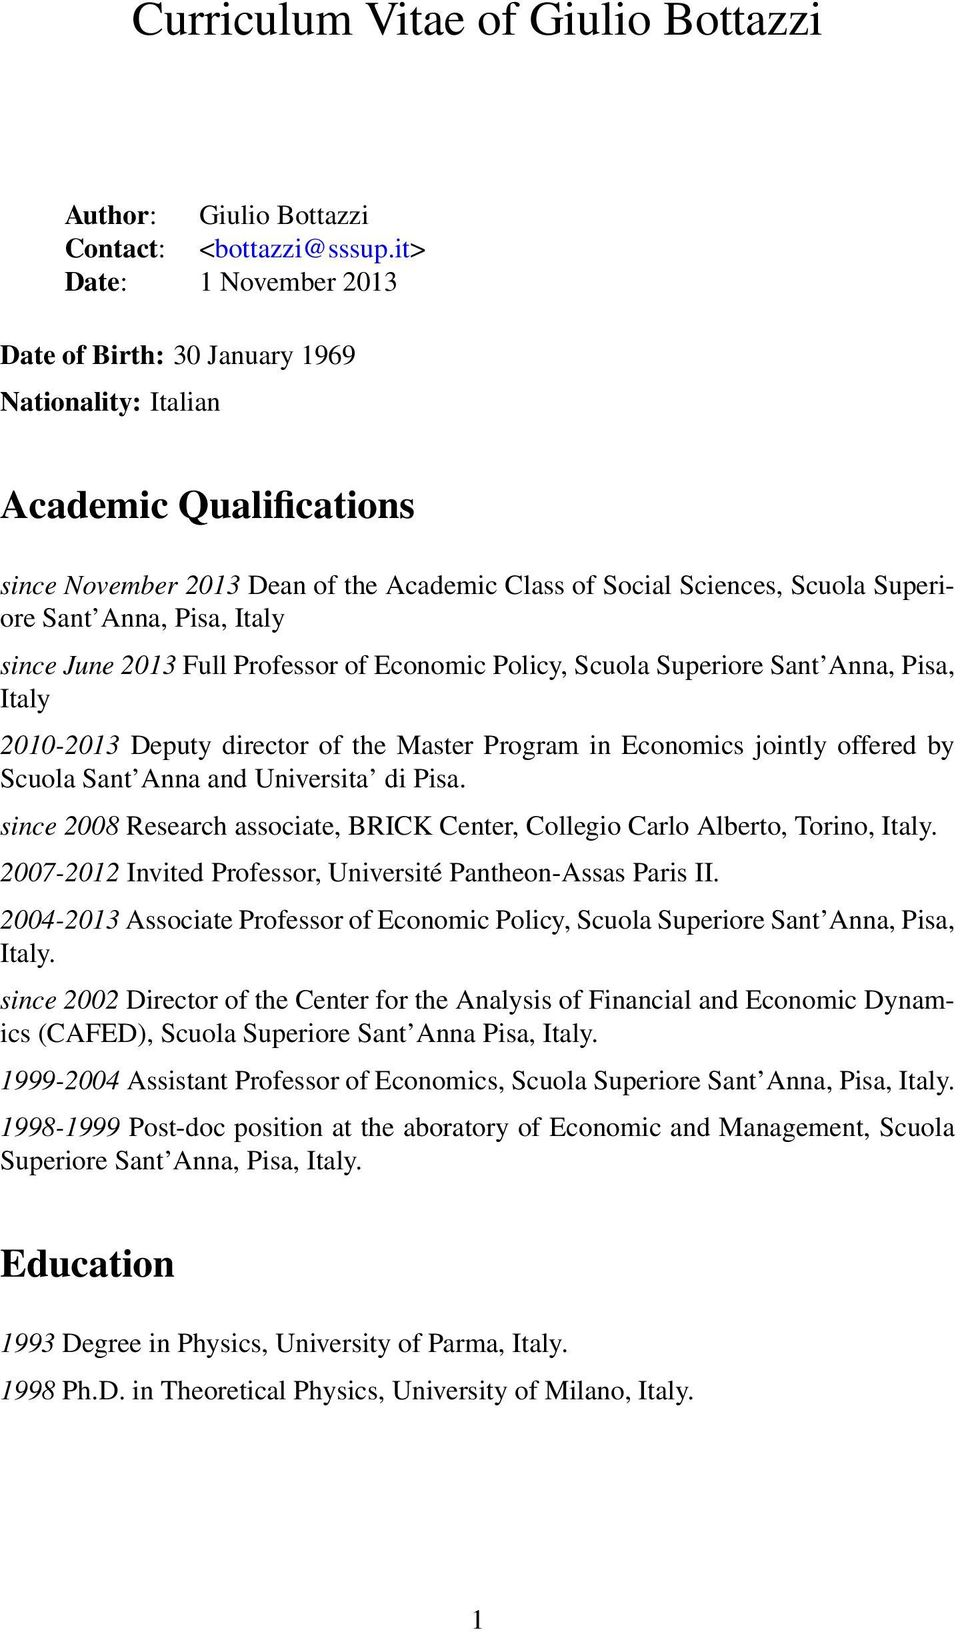 Pisa, Italy since June 2013 Full Professor of Economic Policy, Scuola Superiore Sant Anna, Pisa, Italy 2010-2013 Deputy director of the Master Program in Economics jointly offered by Scuola Sant Anna